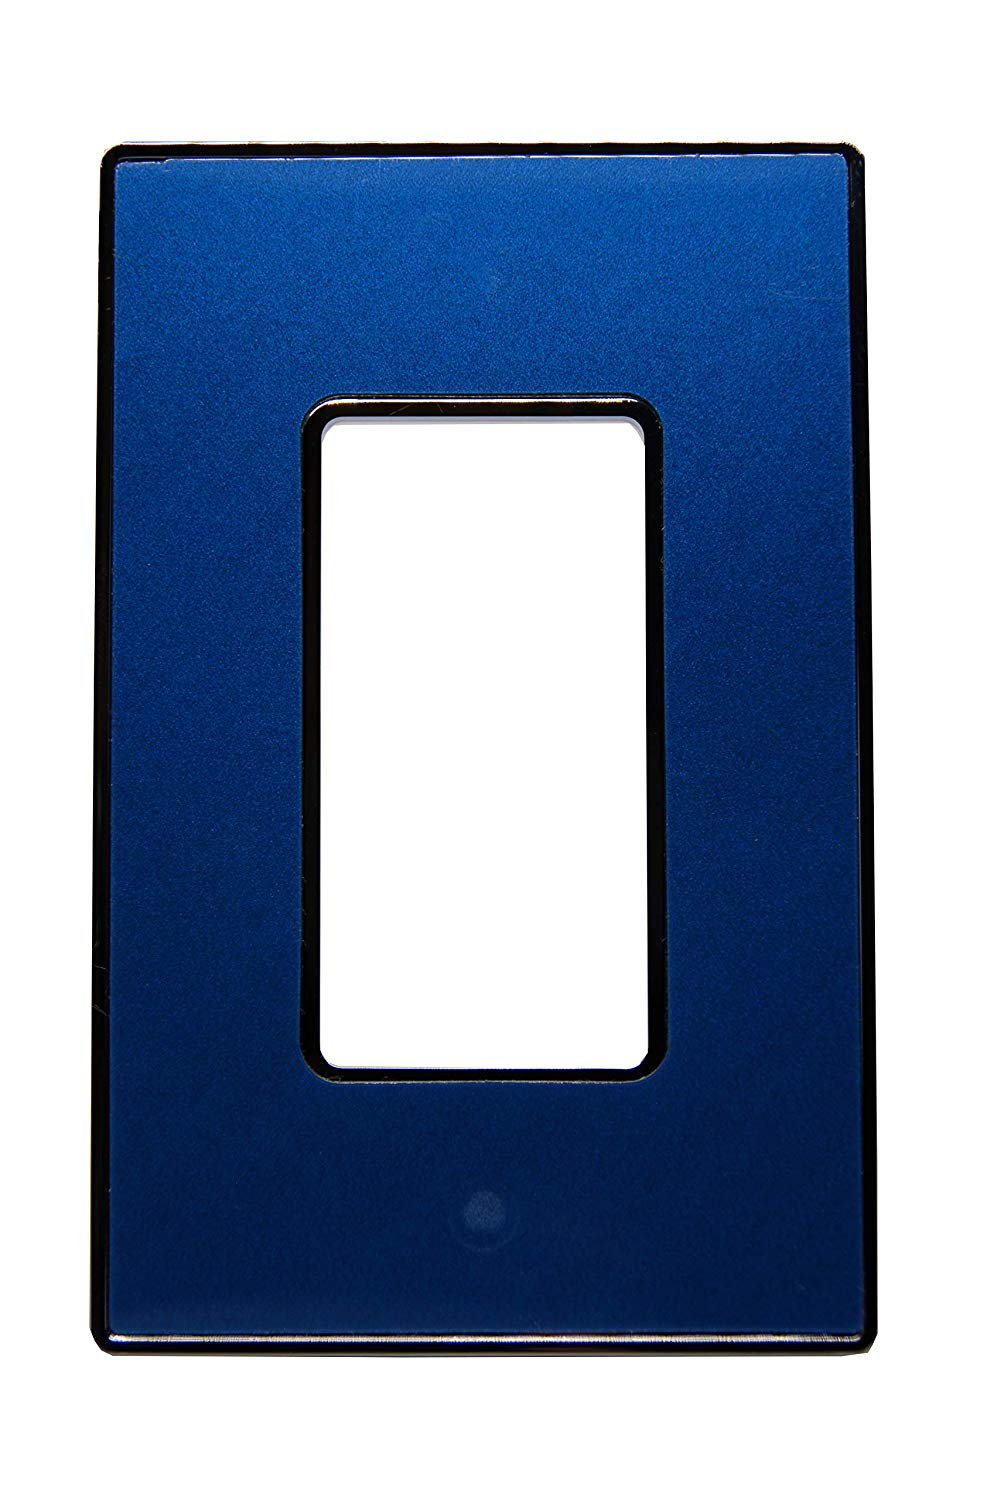 Urban Chameleon Premium 1-Gang Decora/Rocker/GFCI Outlet/Timer/Dimmer Light Switch Cover (Wallplate/Switch Plate) (Blue Pearl)